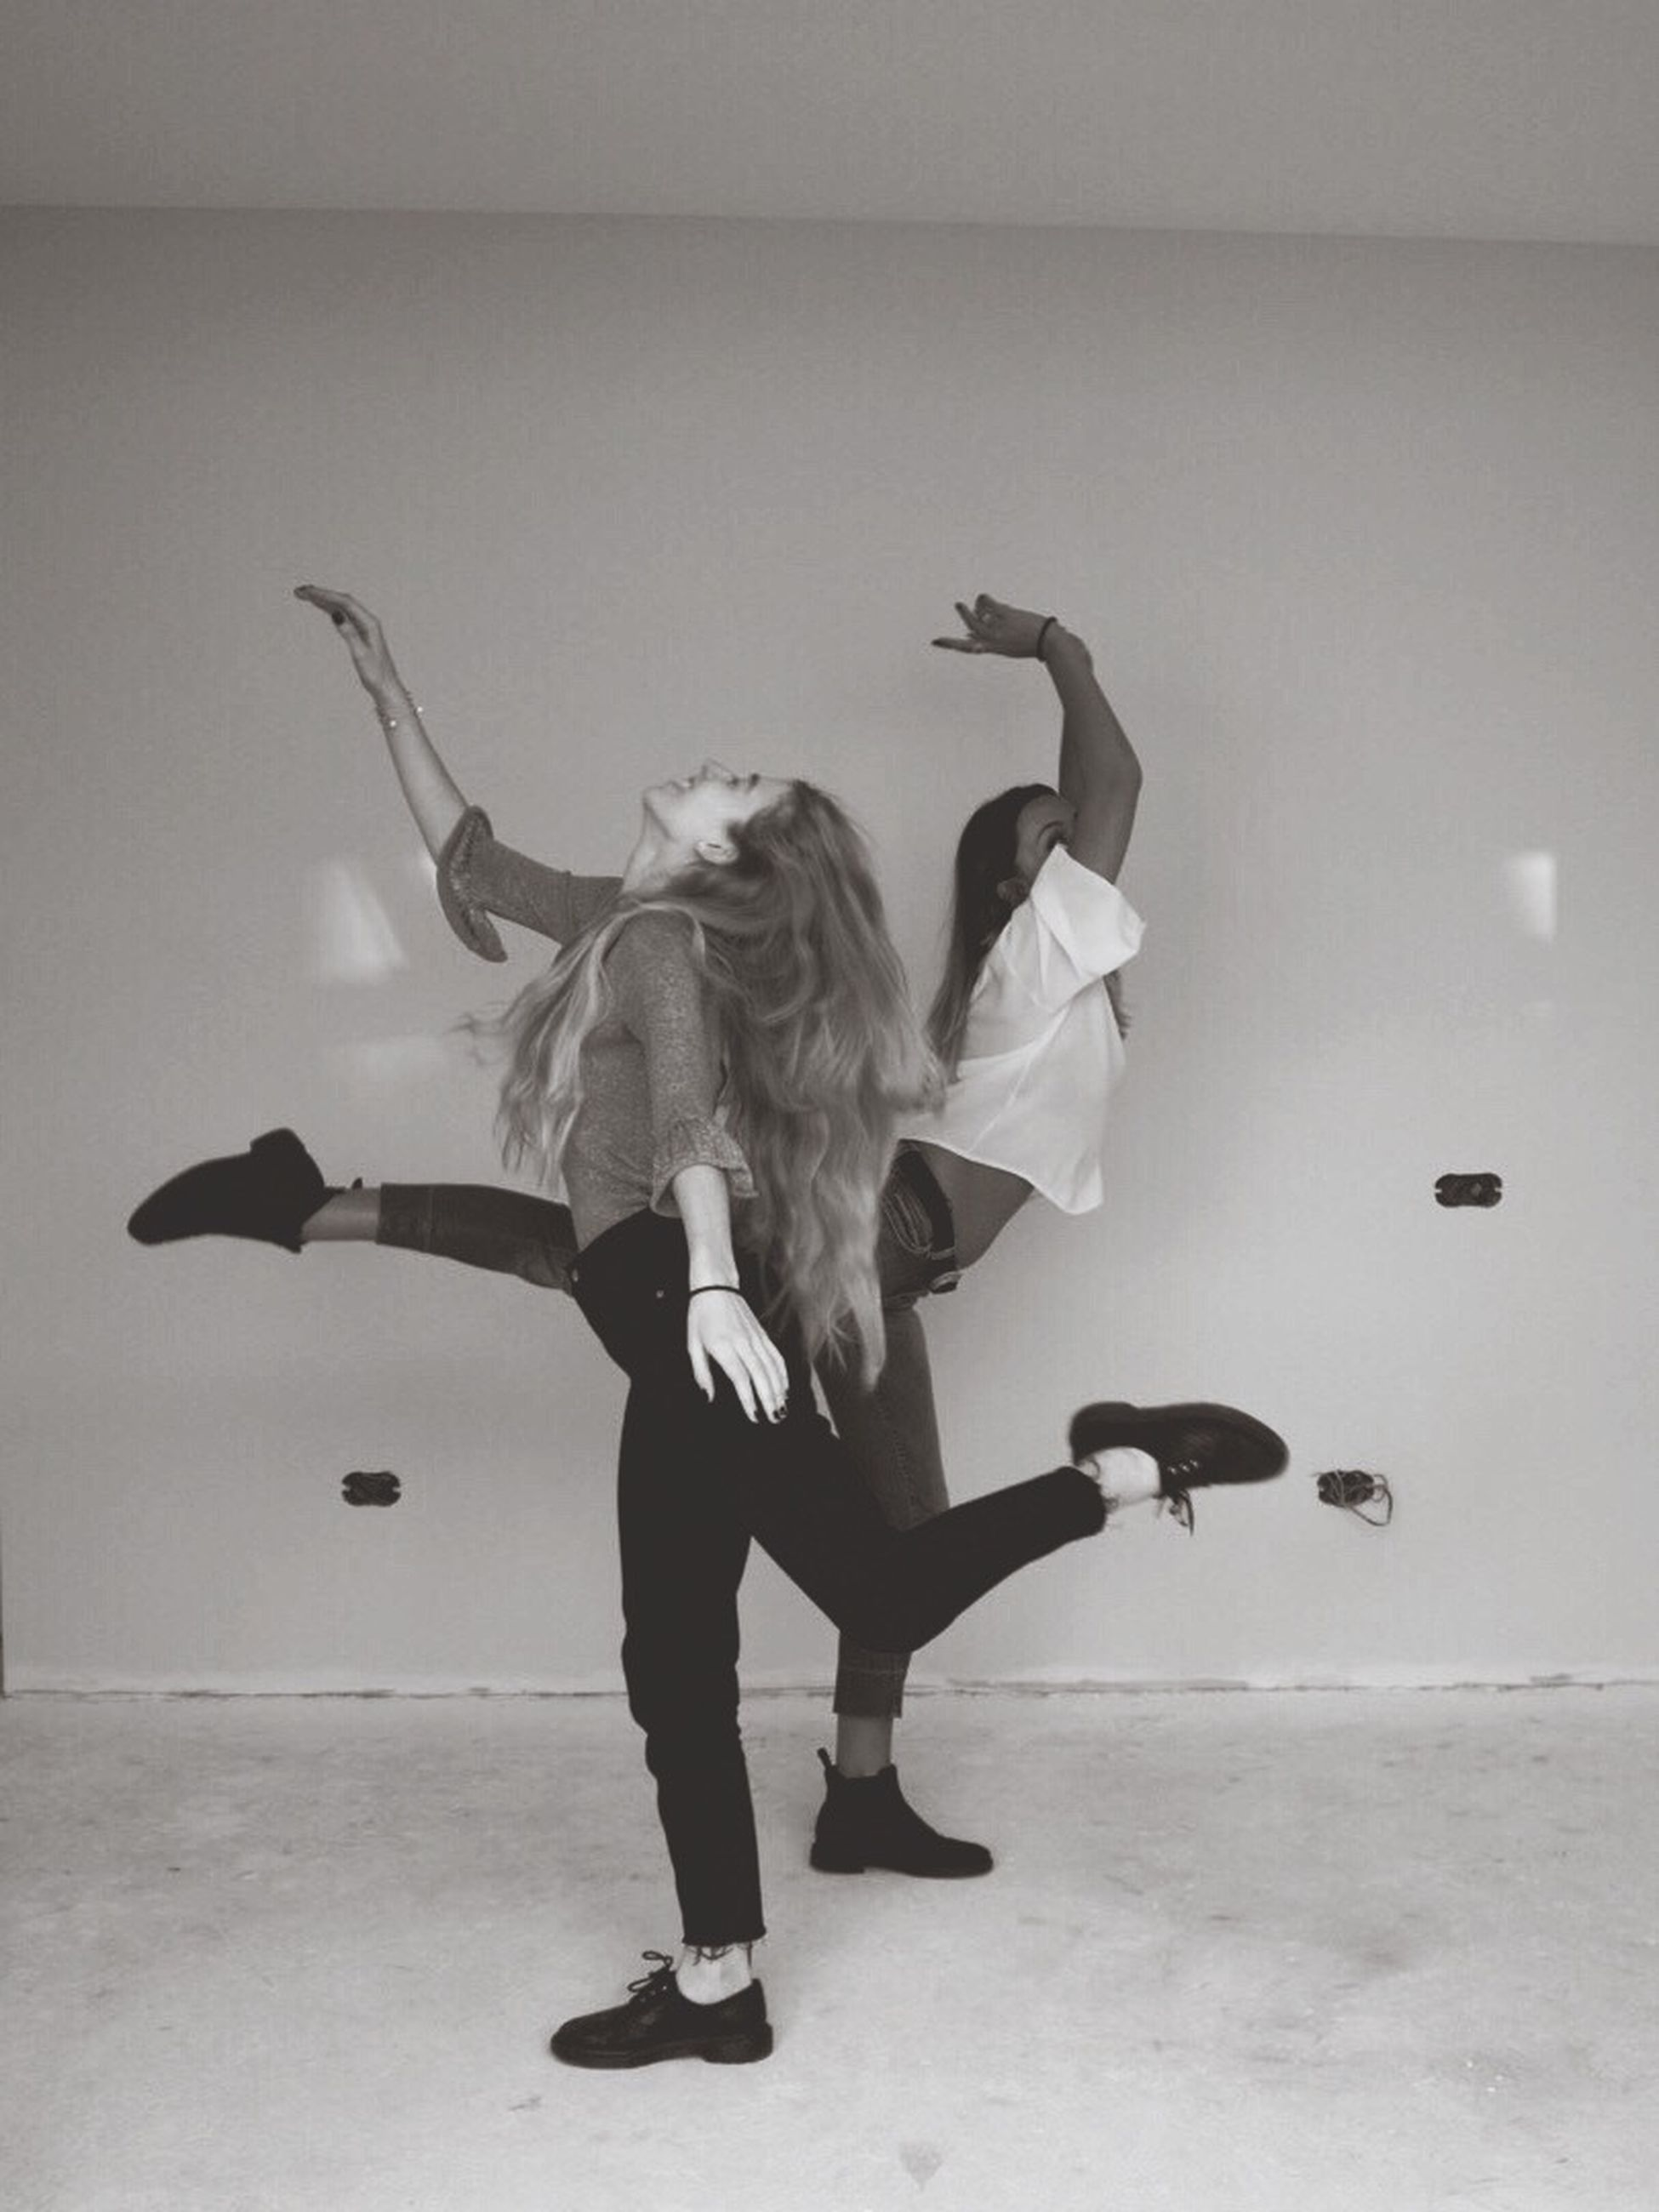 dancing, dancer, real people, leisure activity, performance, two people, fun, young women, balance, skill, full length, lifestyles, young adult, upside down, arts culture and entertainment, motion, flexibility, togetherness, women, indoors, handstand, ballet dancer, breakdancing, day, people